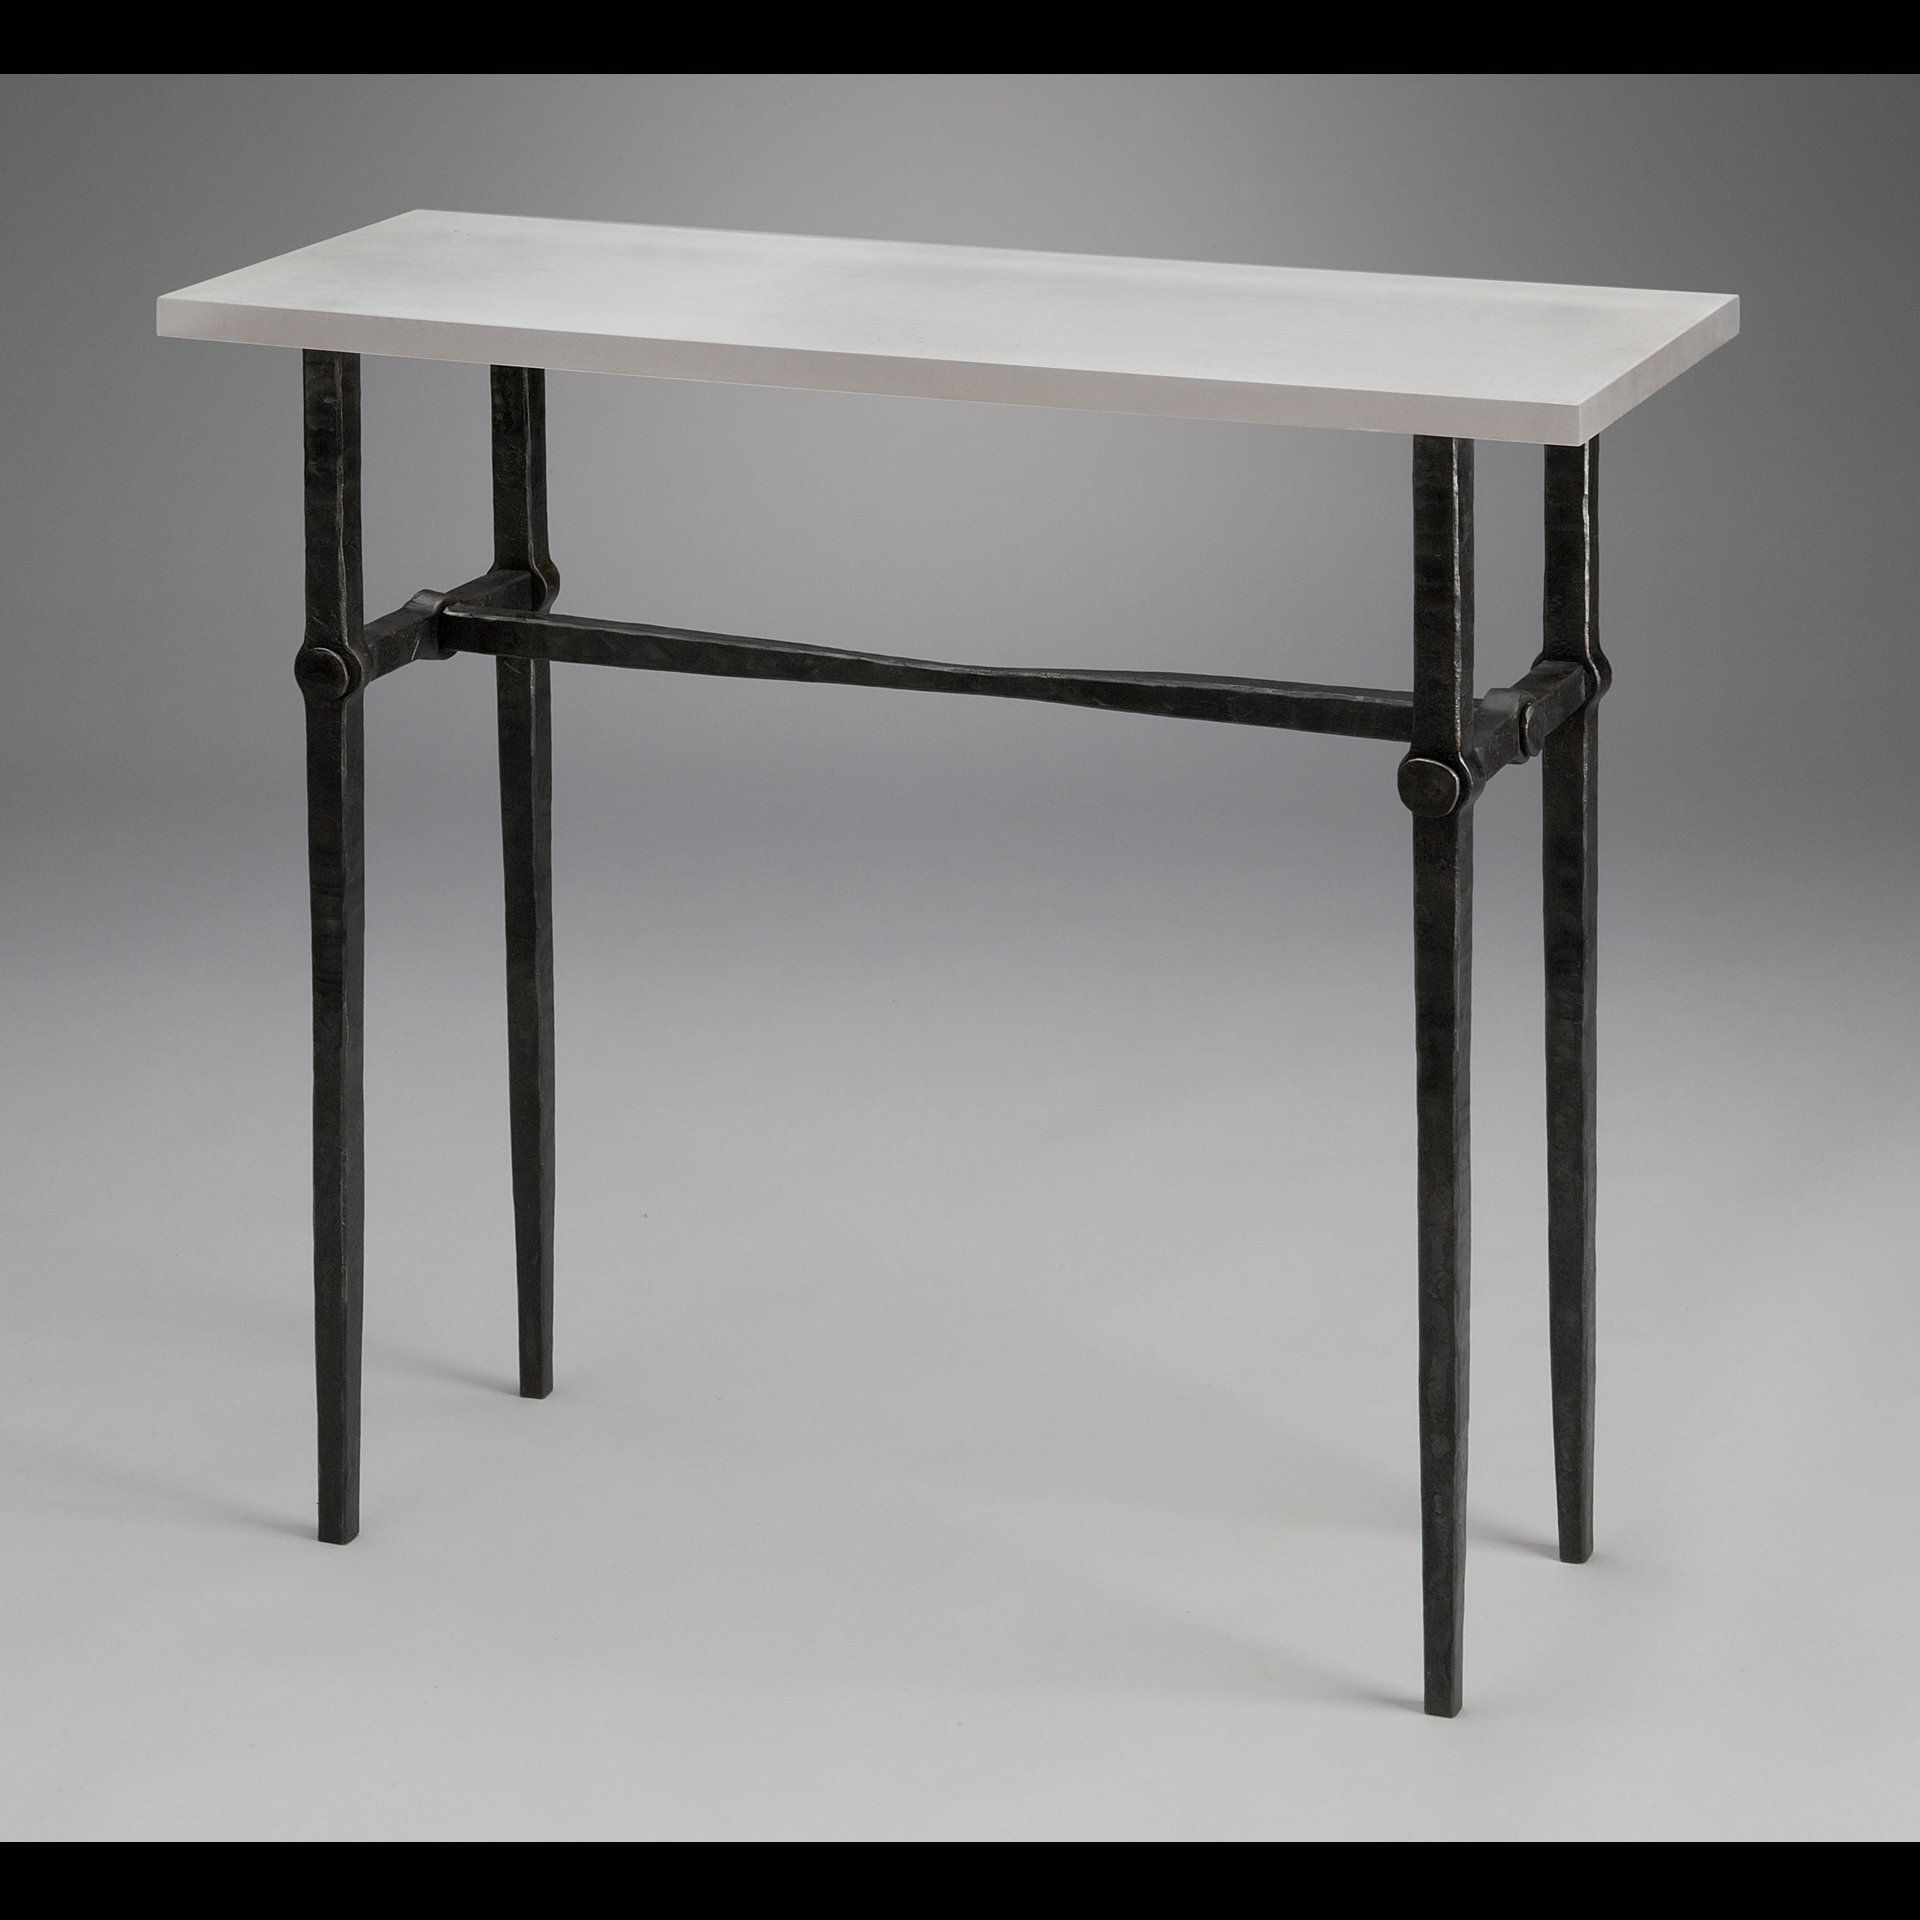 Pinjulia Forbes On Patio Ideas | Table, Console Table, Narrow In Parsons Walnut Top & Dark Steel Base 48X16 Console Tables (View 19 of 20)